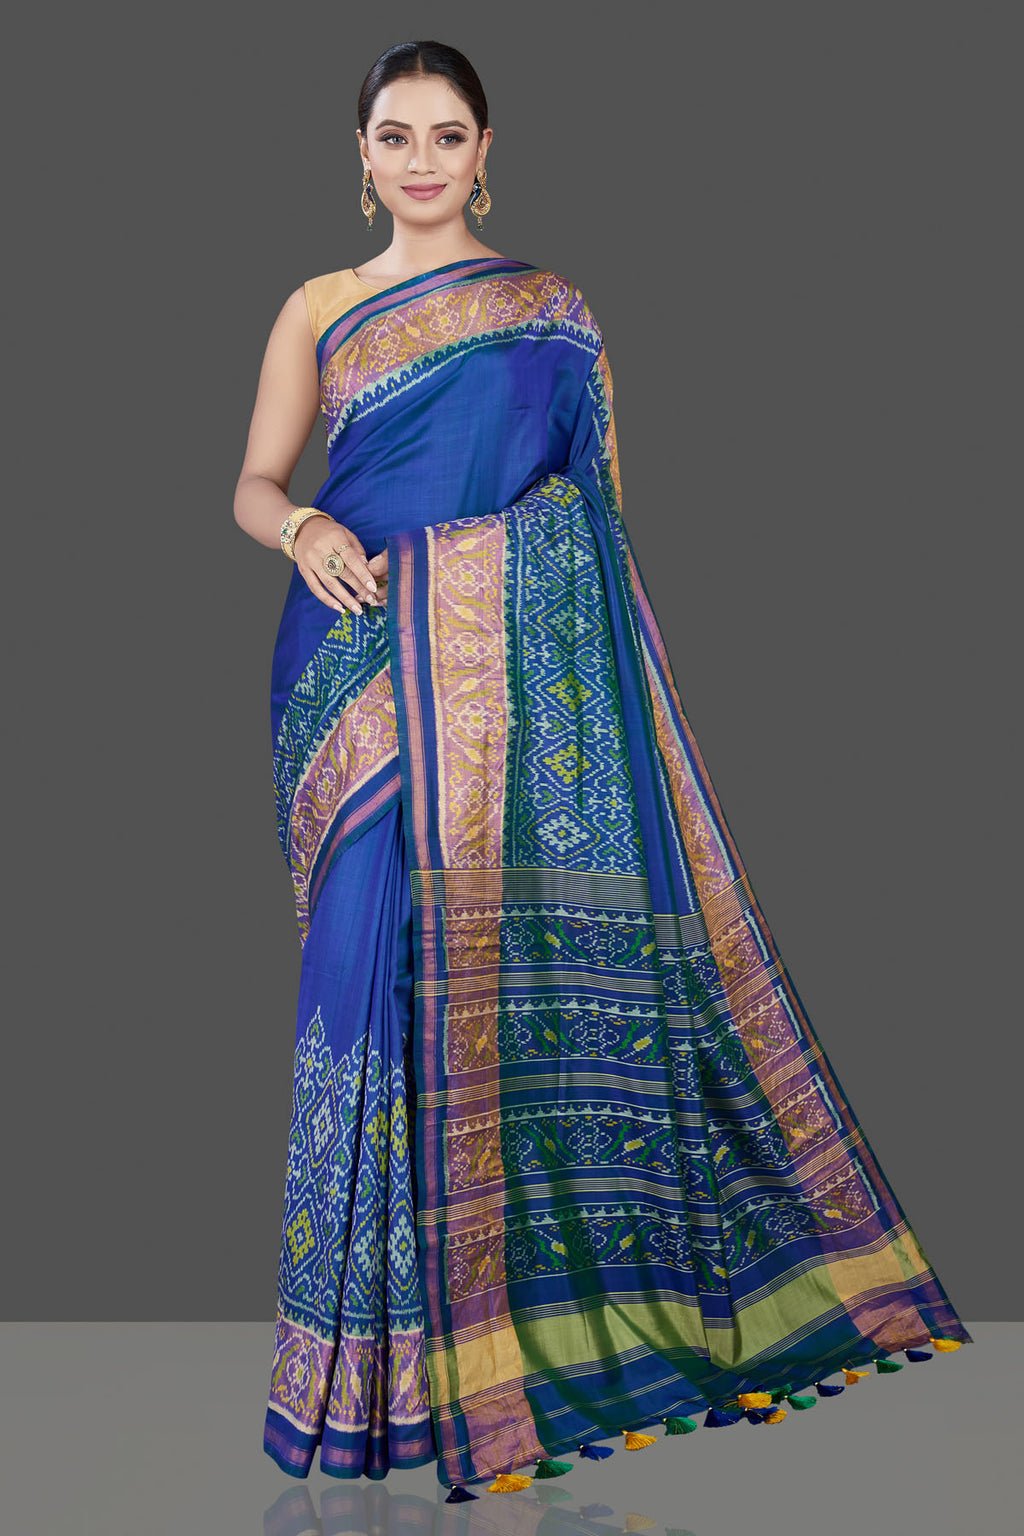 Buy beautiful blue saree online in USA with patola border and pallu. Be the talk of the occasion in exquisite designer sarees, pure silk sarees, tussar saris, embroidered sarees, handloom sarees from Pure Elegance Indian fashion store in USA.-full view